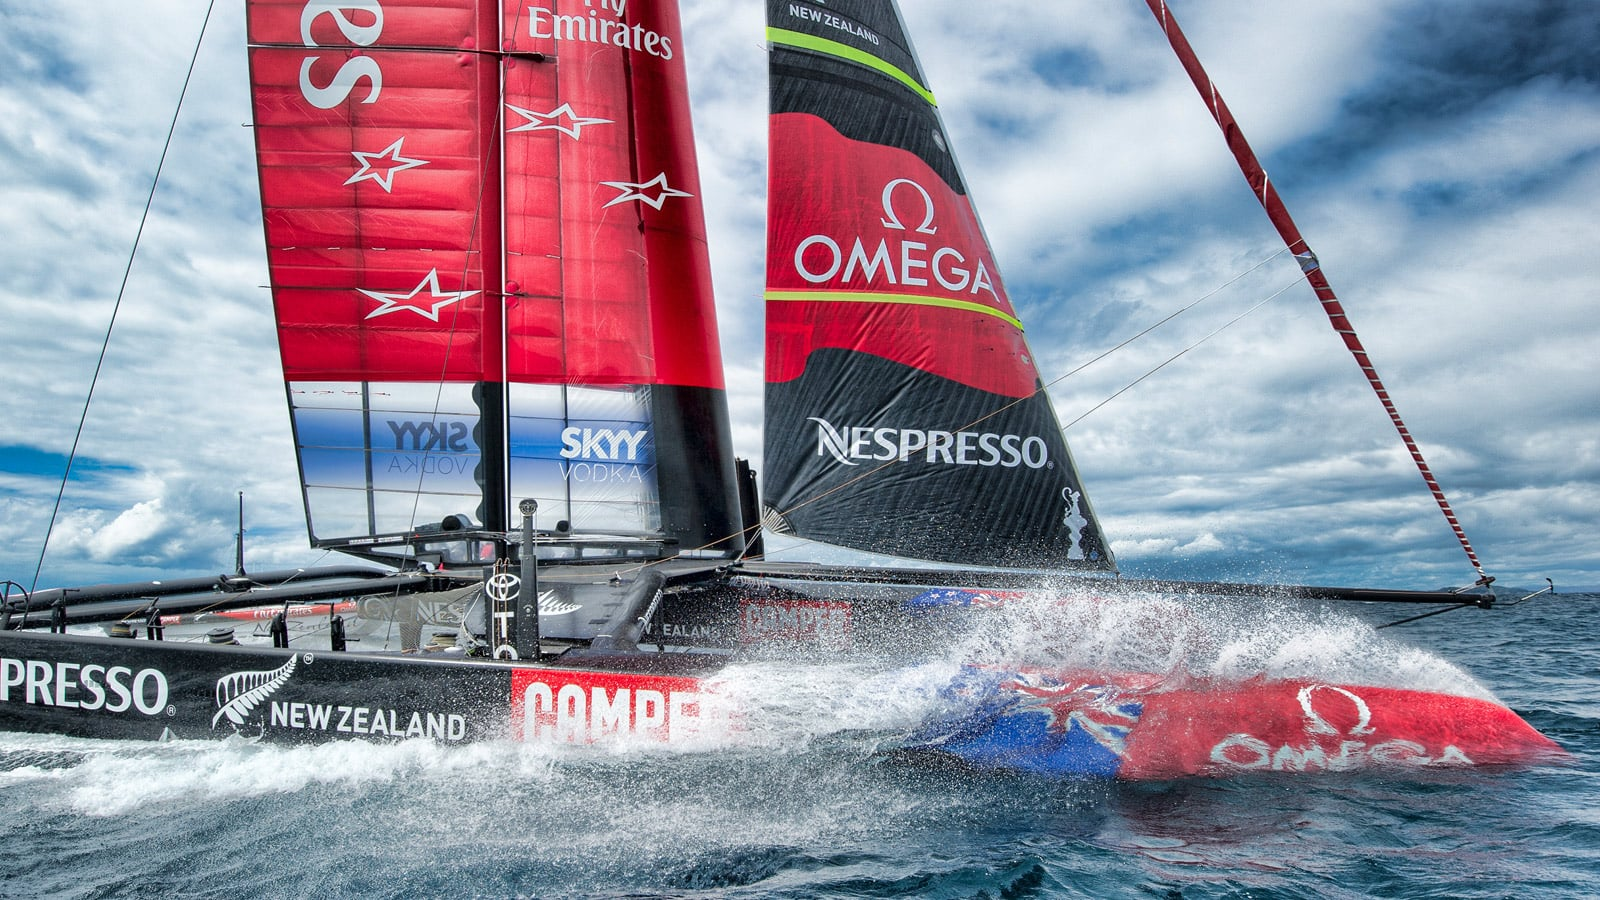 The catamaran of the Emirates Team New Zealand braving a wave in the middle of the sea